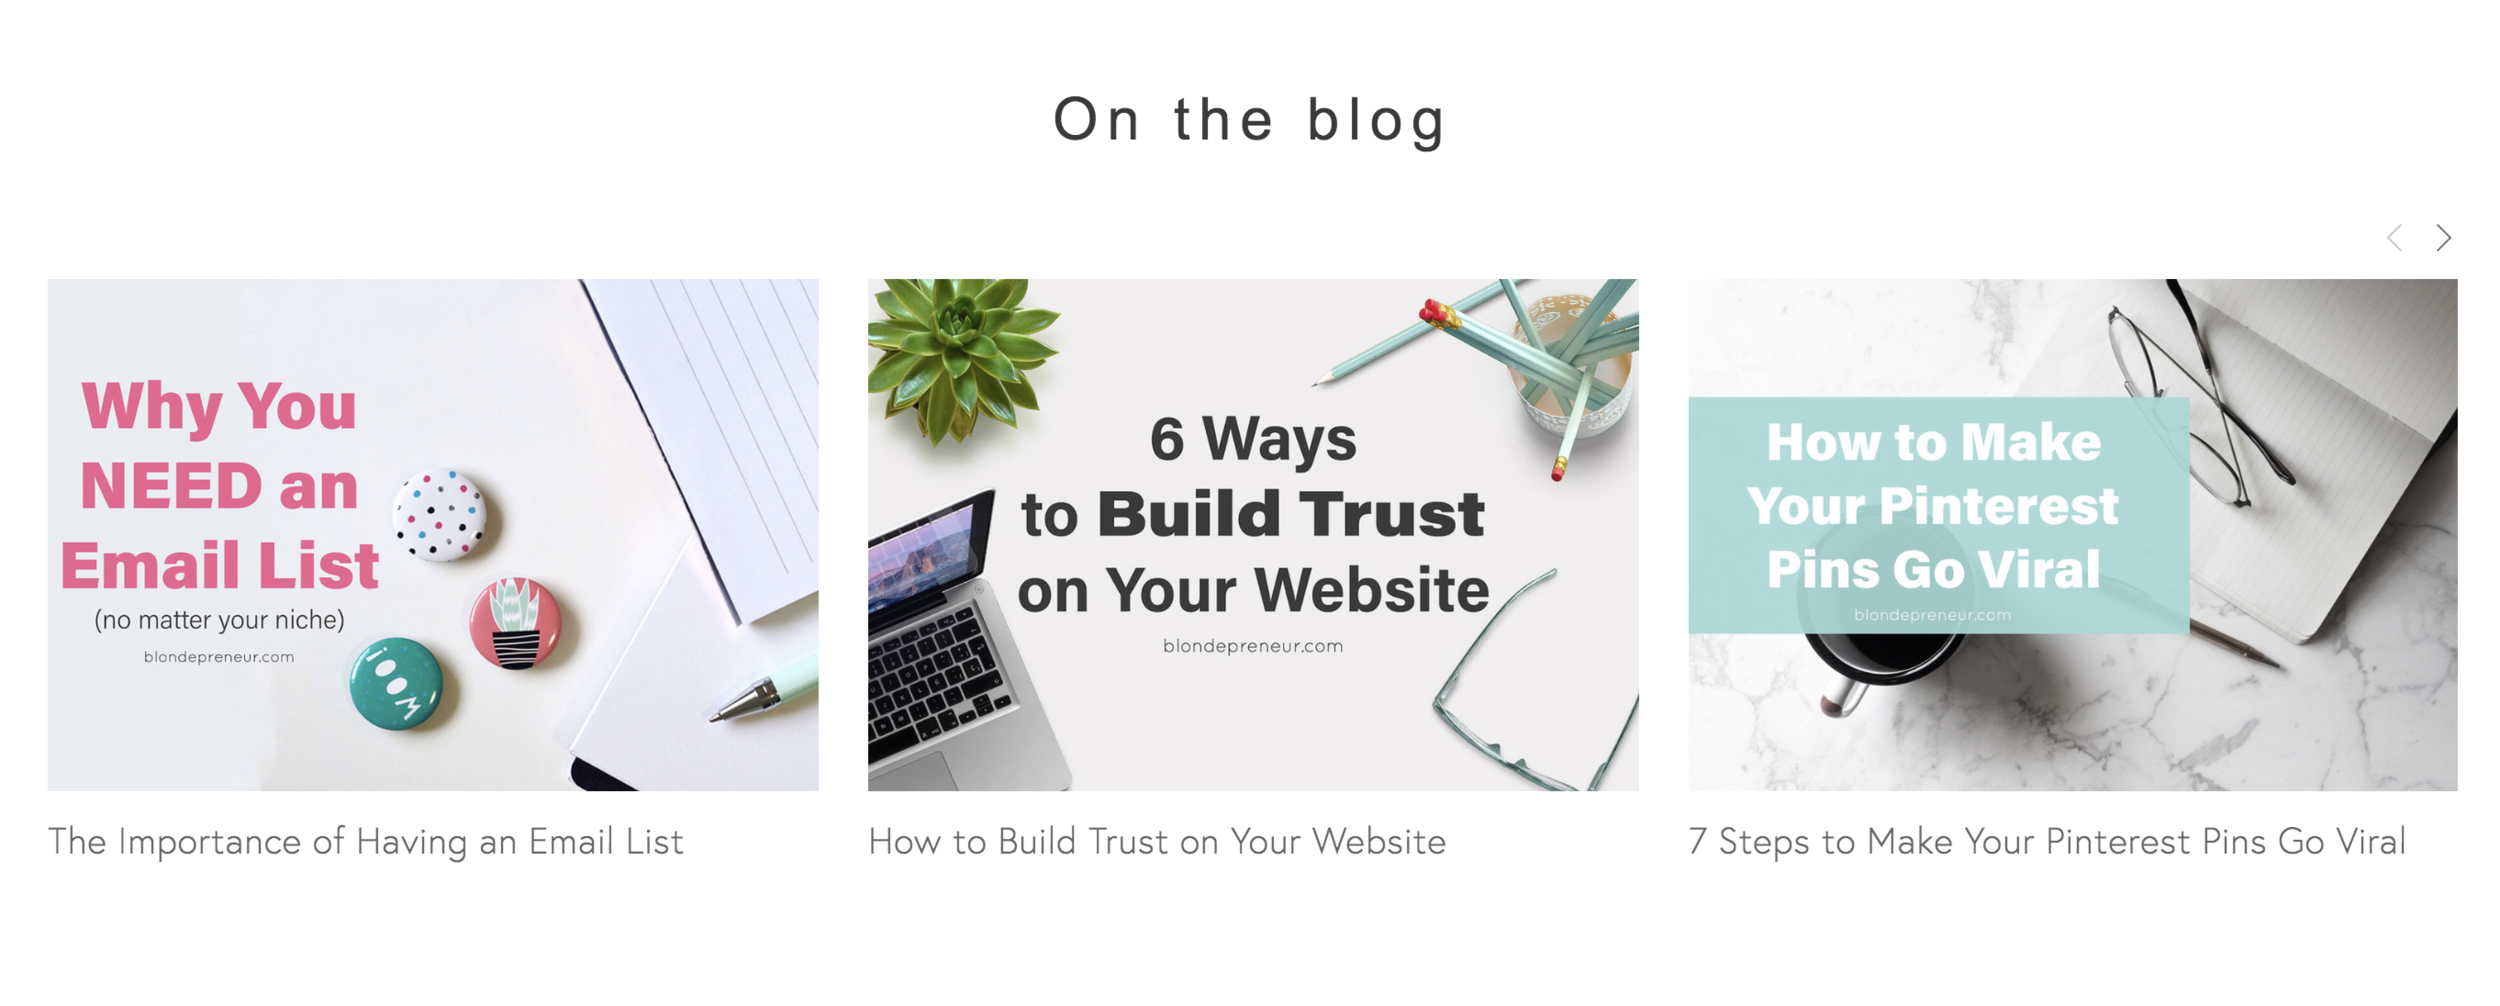 Offer free content on your homepage to give your readers value